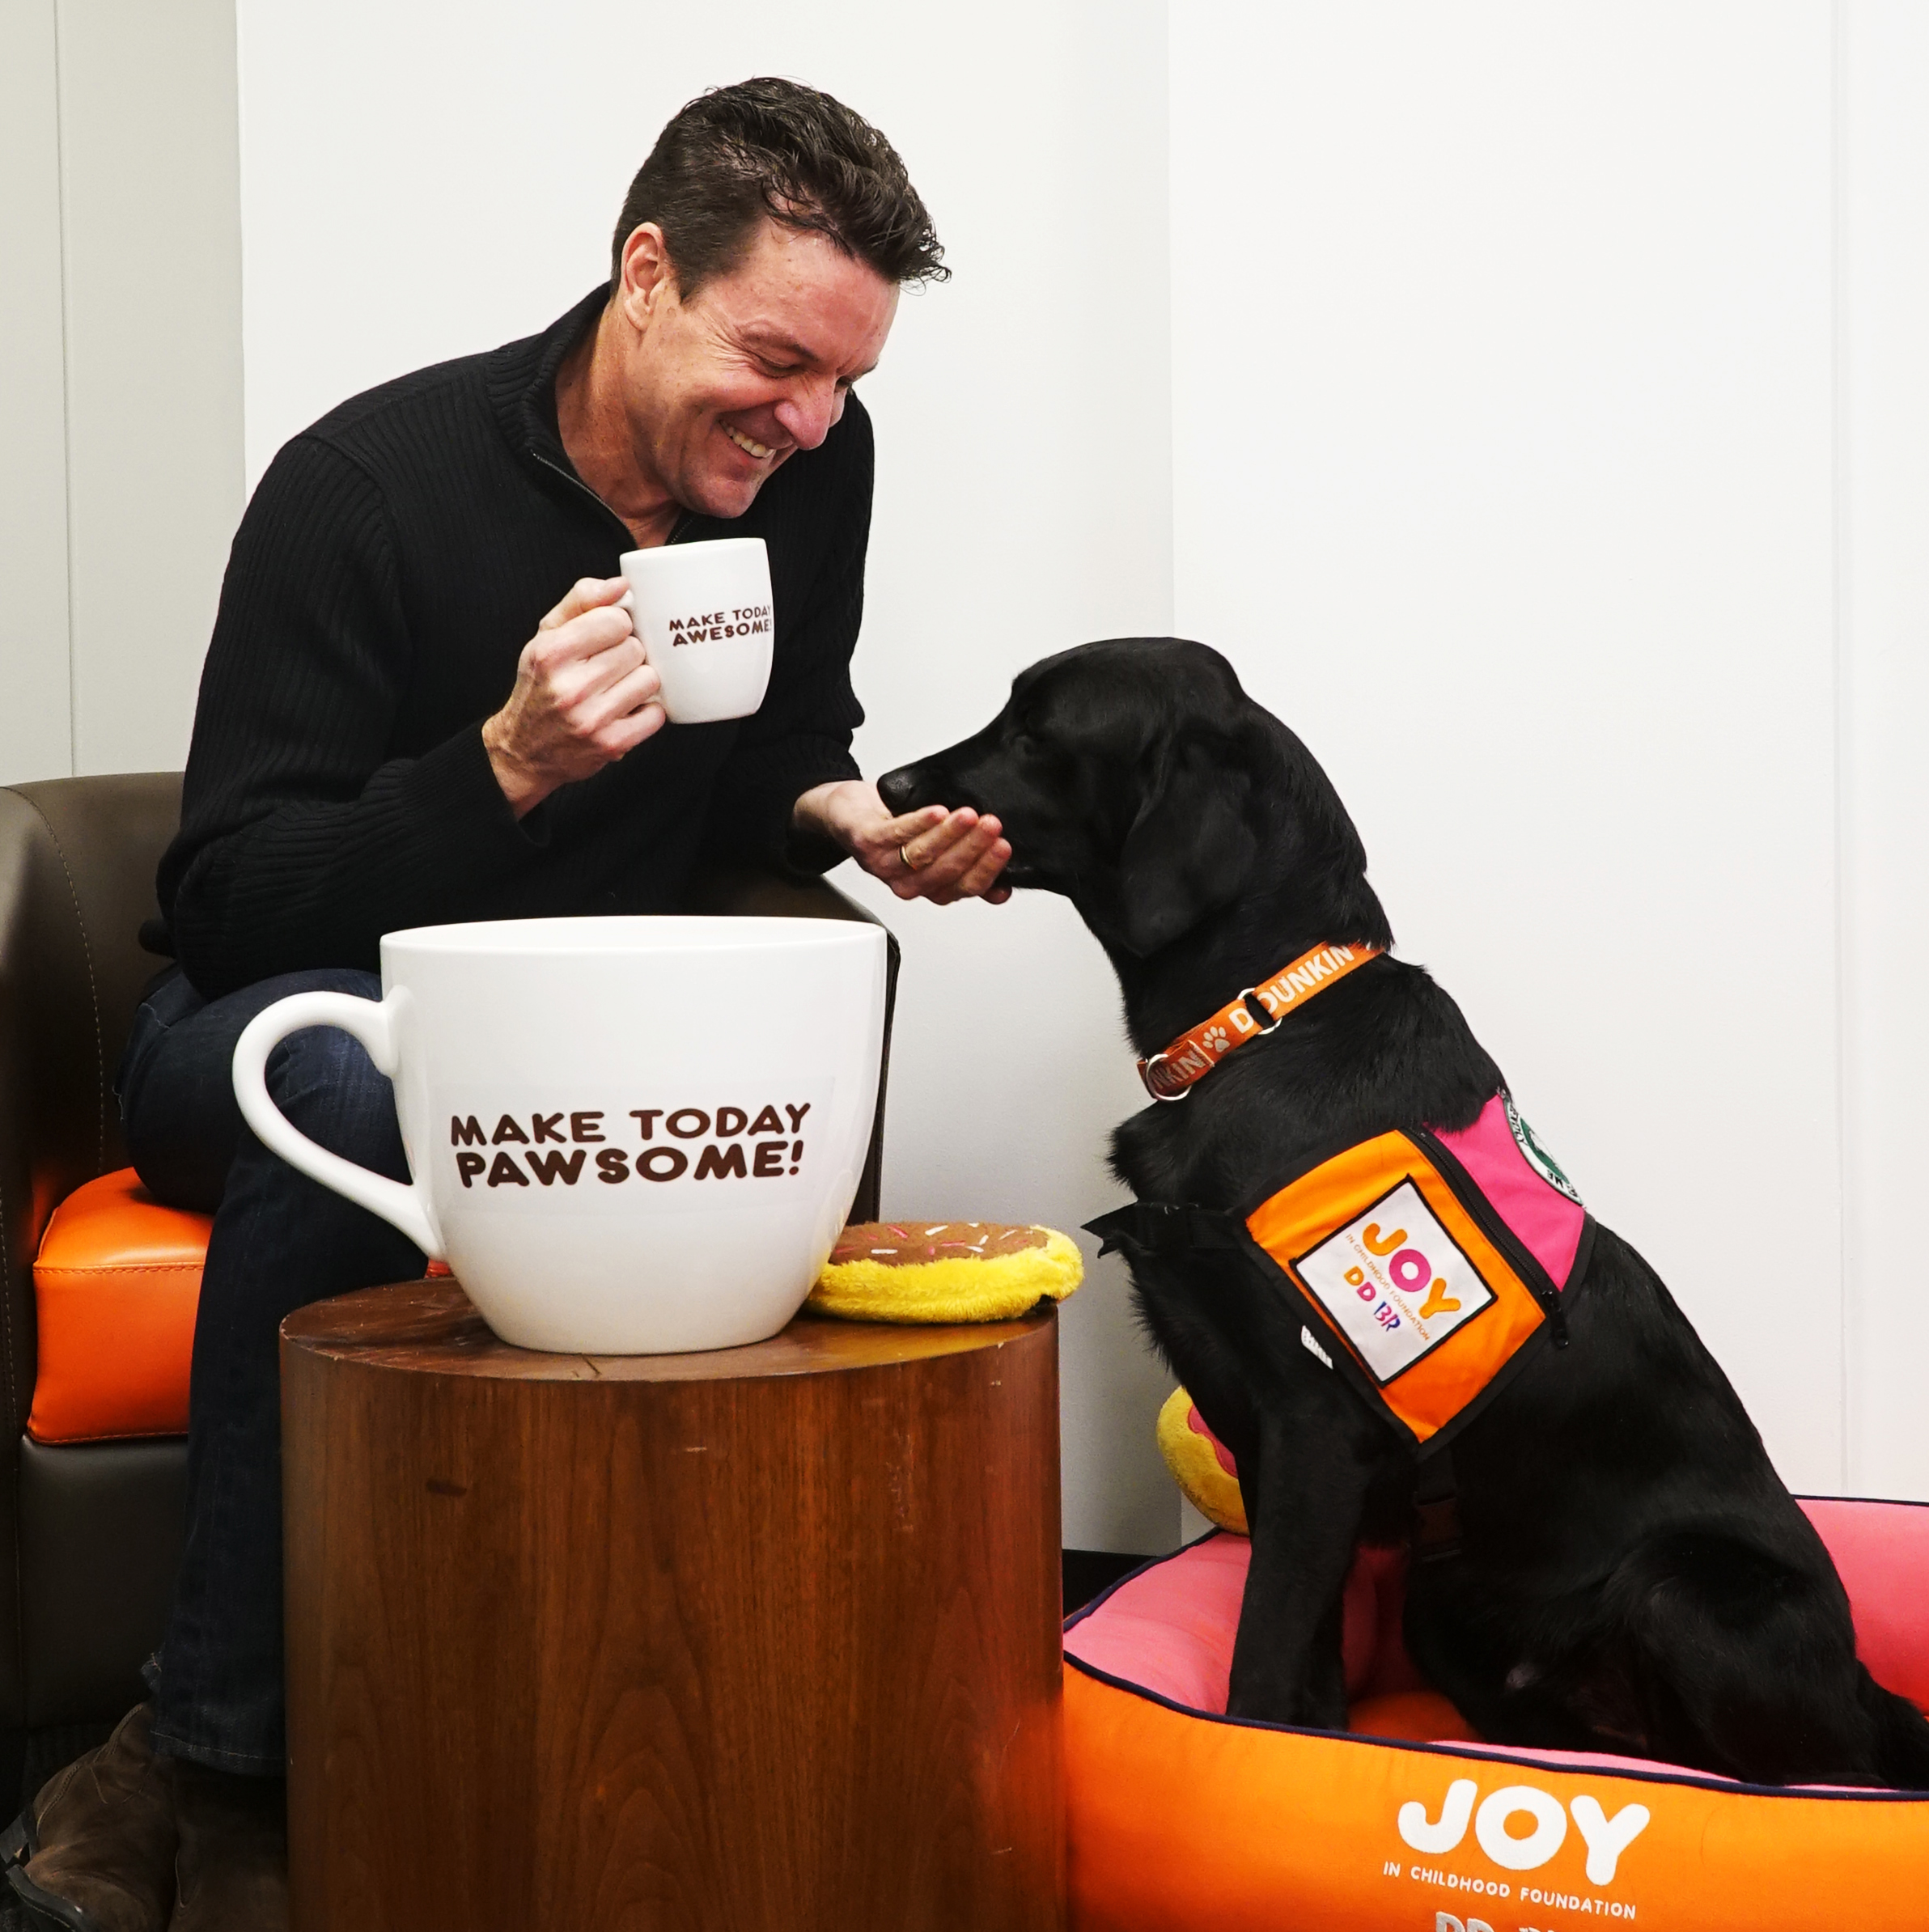 Dunkin' CEO, Dave Hoffmann having a meeting with the Chief Joy Officer, Cooper Dunkin'.